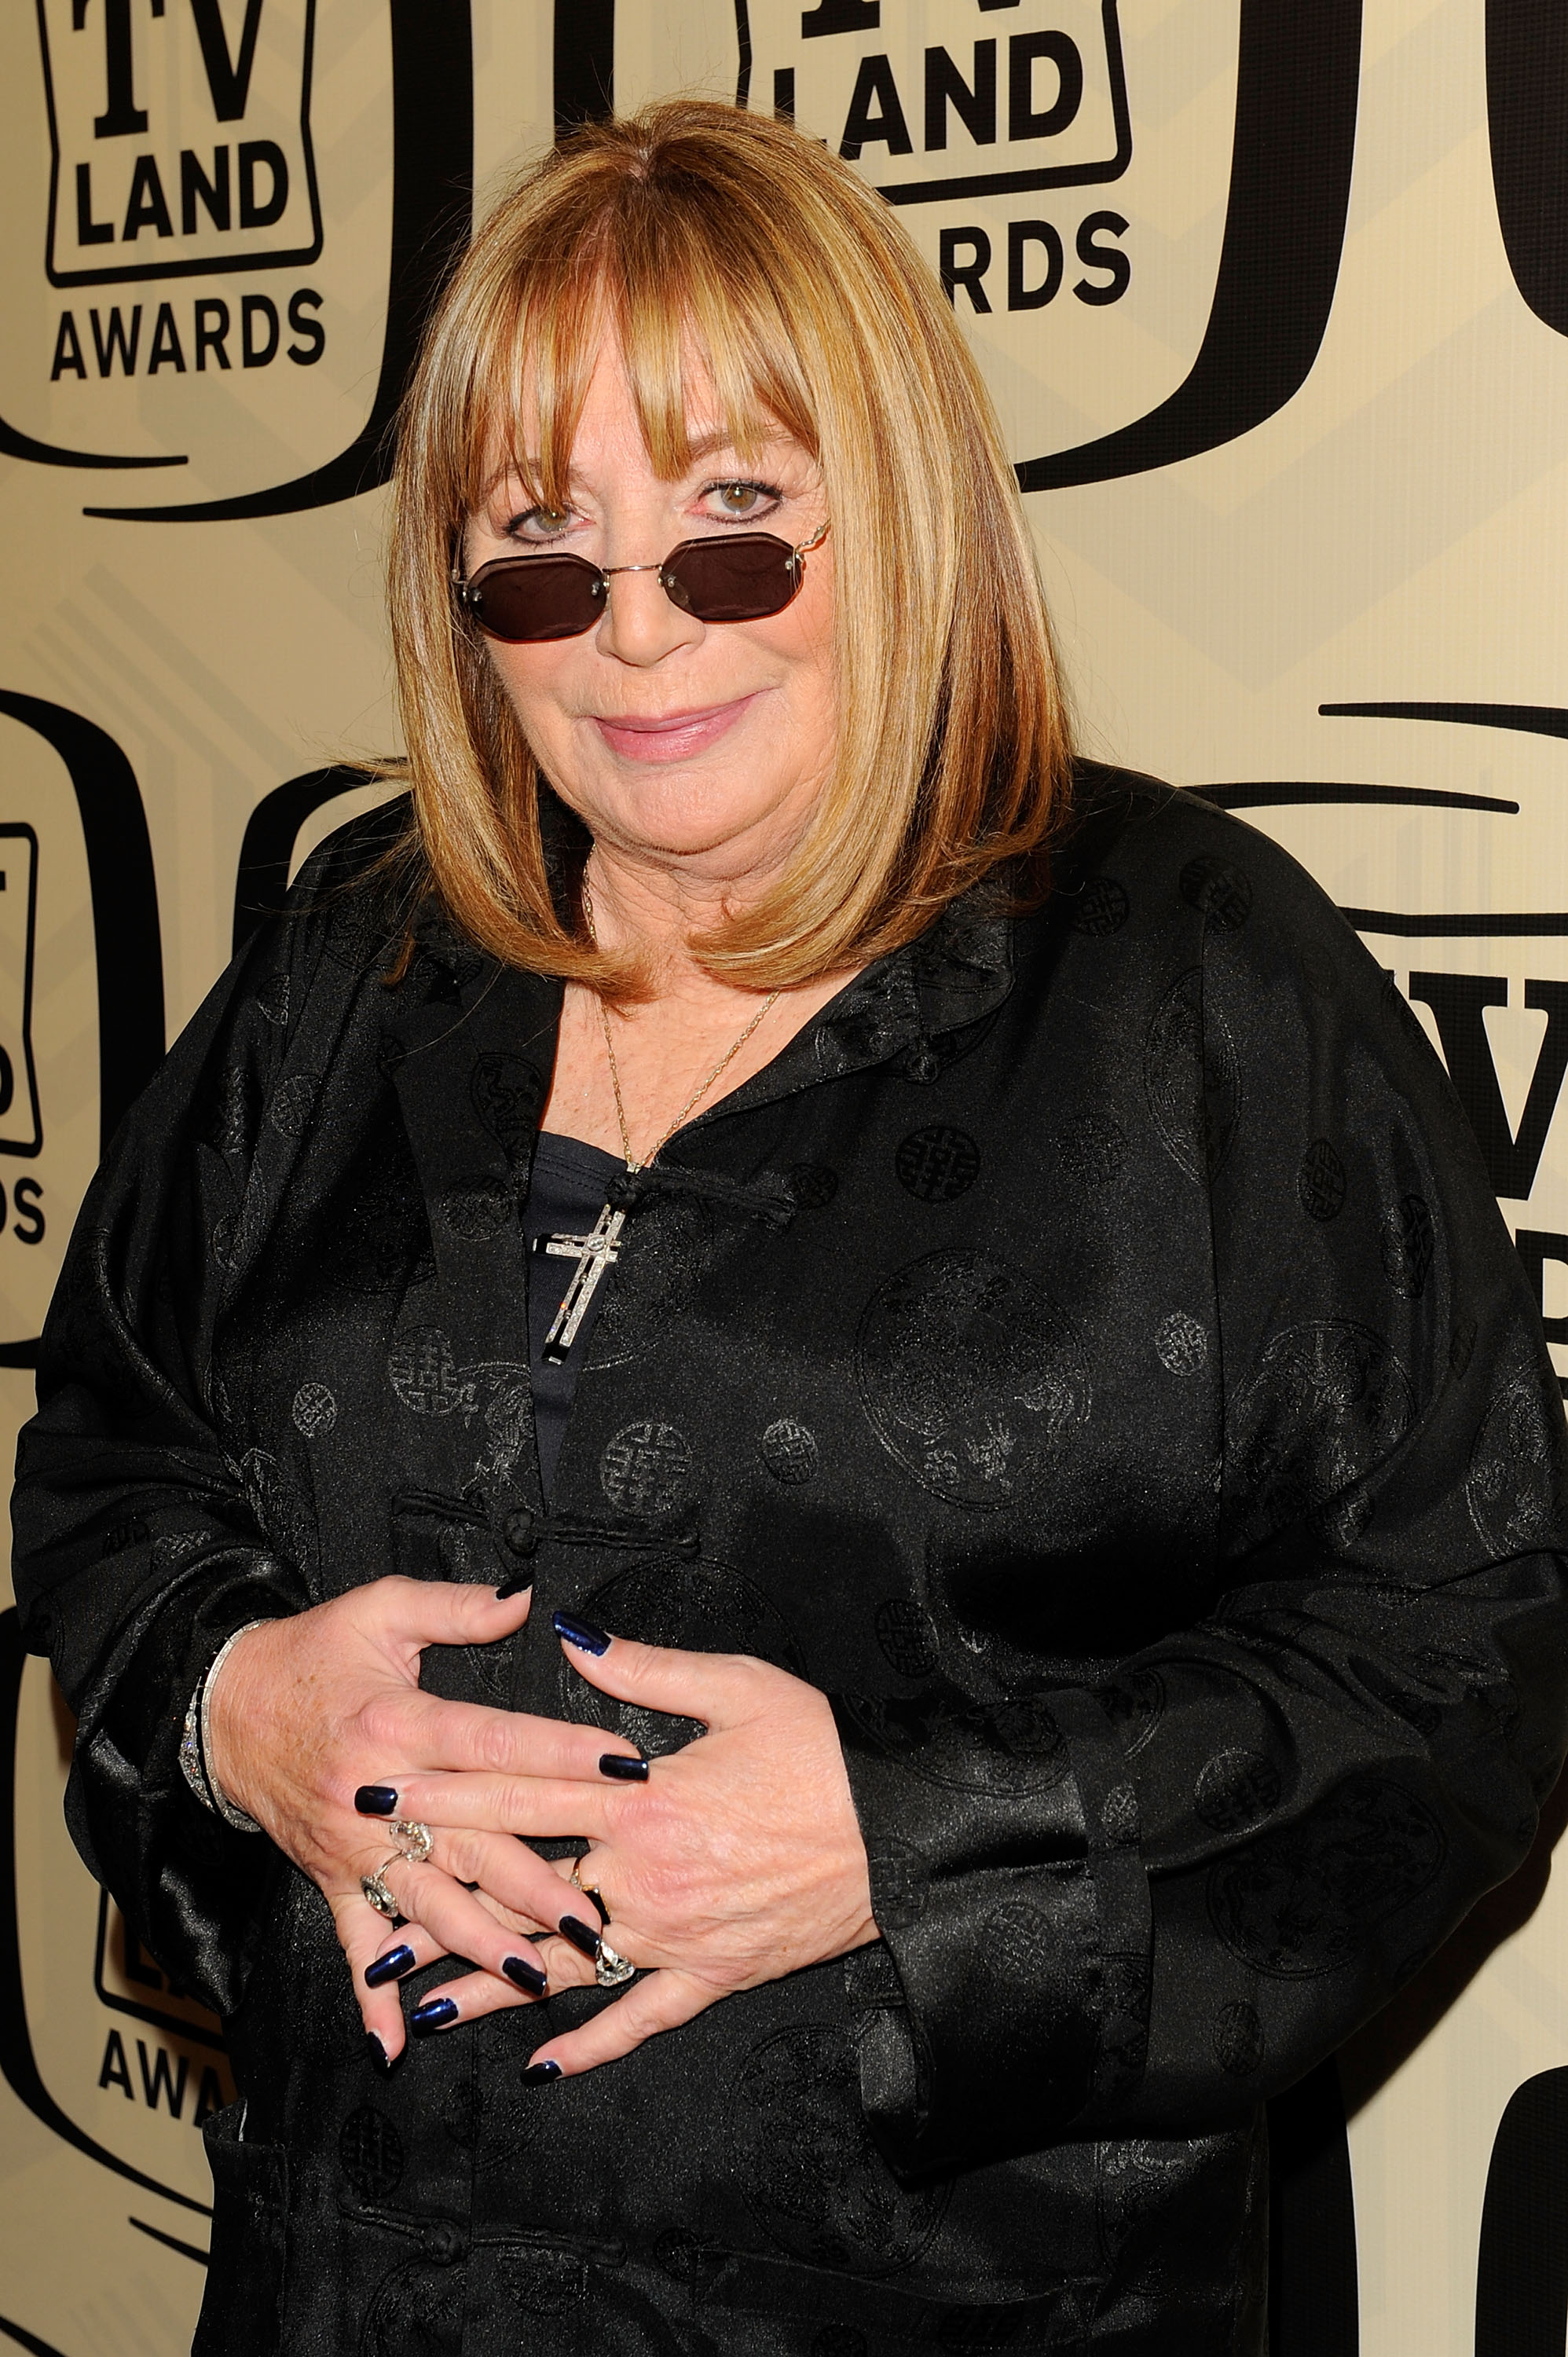 Actress Penny Marshall attends the 10th Annual TV Land Awards at the Lexington Avenue Armory on April 14, 2012 in New York City.